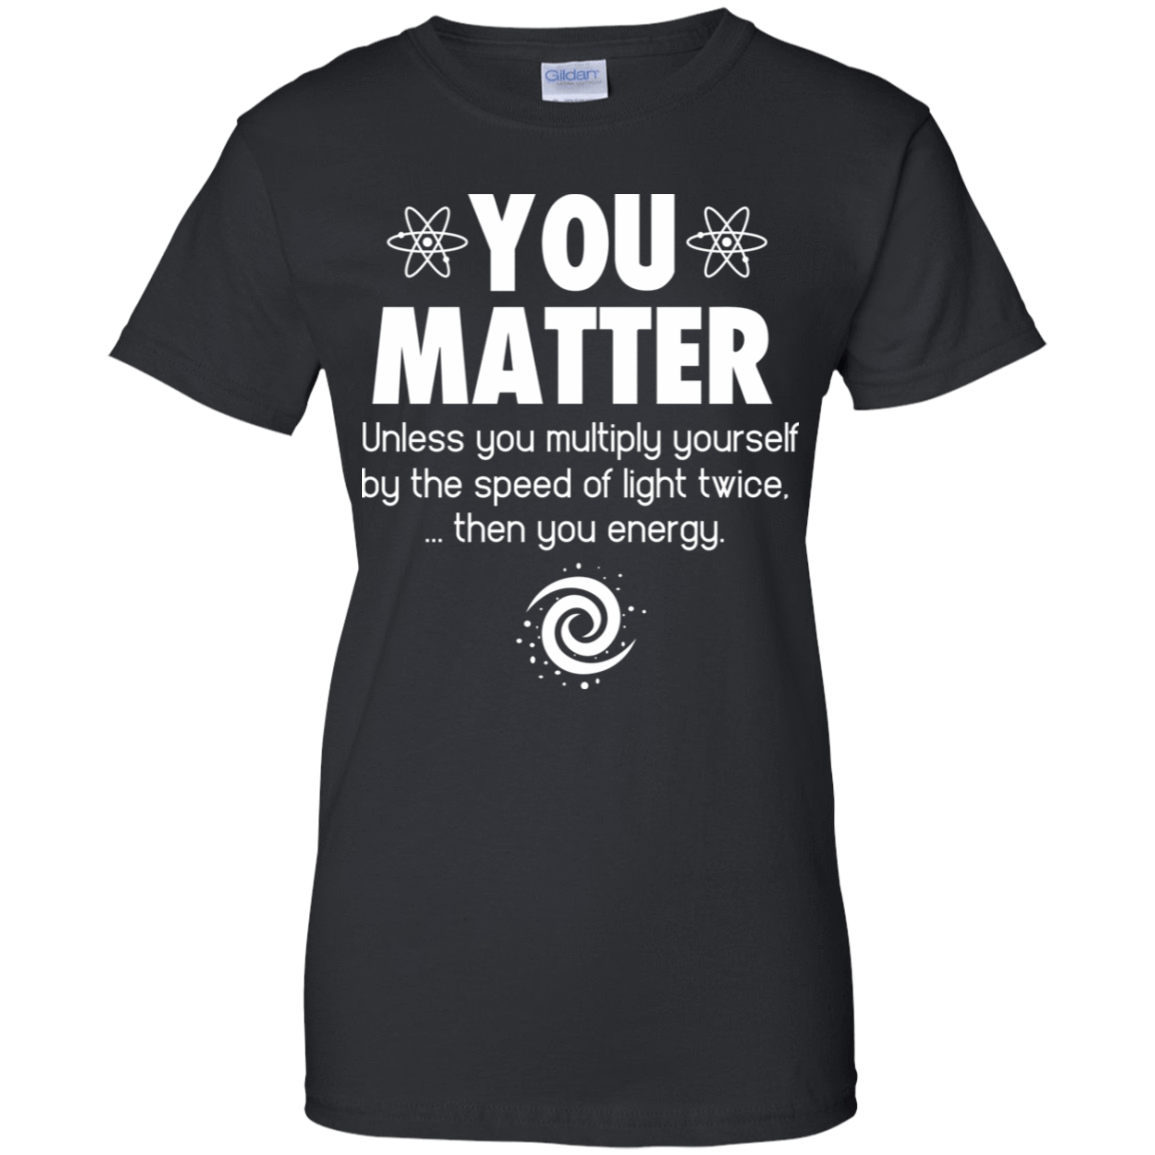 You Matter. Until You Multiply Yourself By The Speed Of Light Twice 939-9248-72771877-44695 - Tee Ript